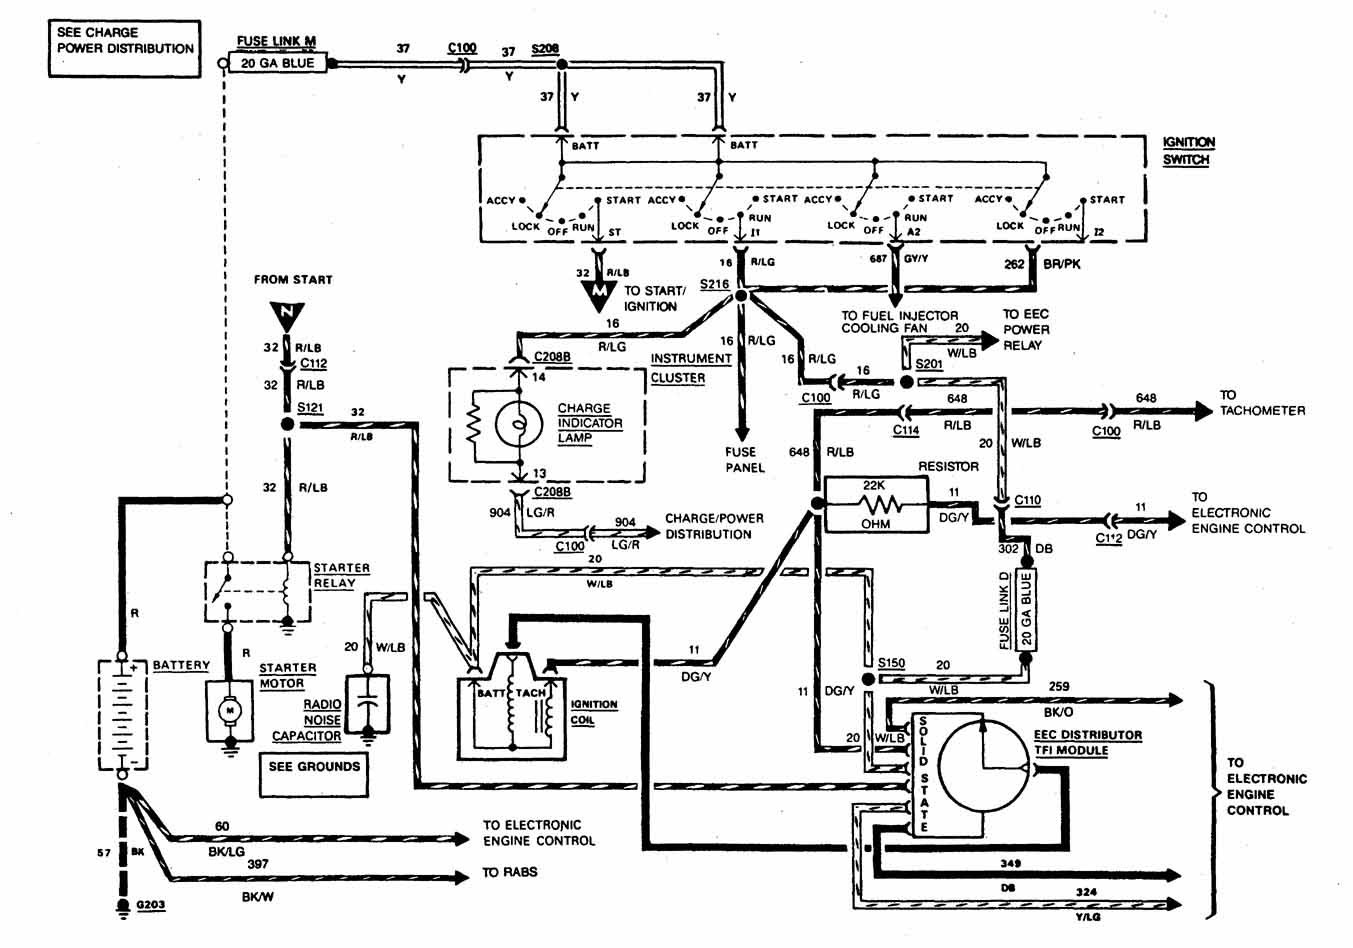 hight resolution of alternator wiring diagram for 1994 ford ranger trusted wiring diagram 1989 ford f 350 alternator diagram